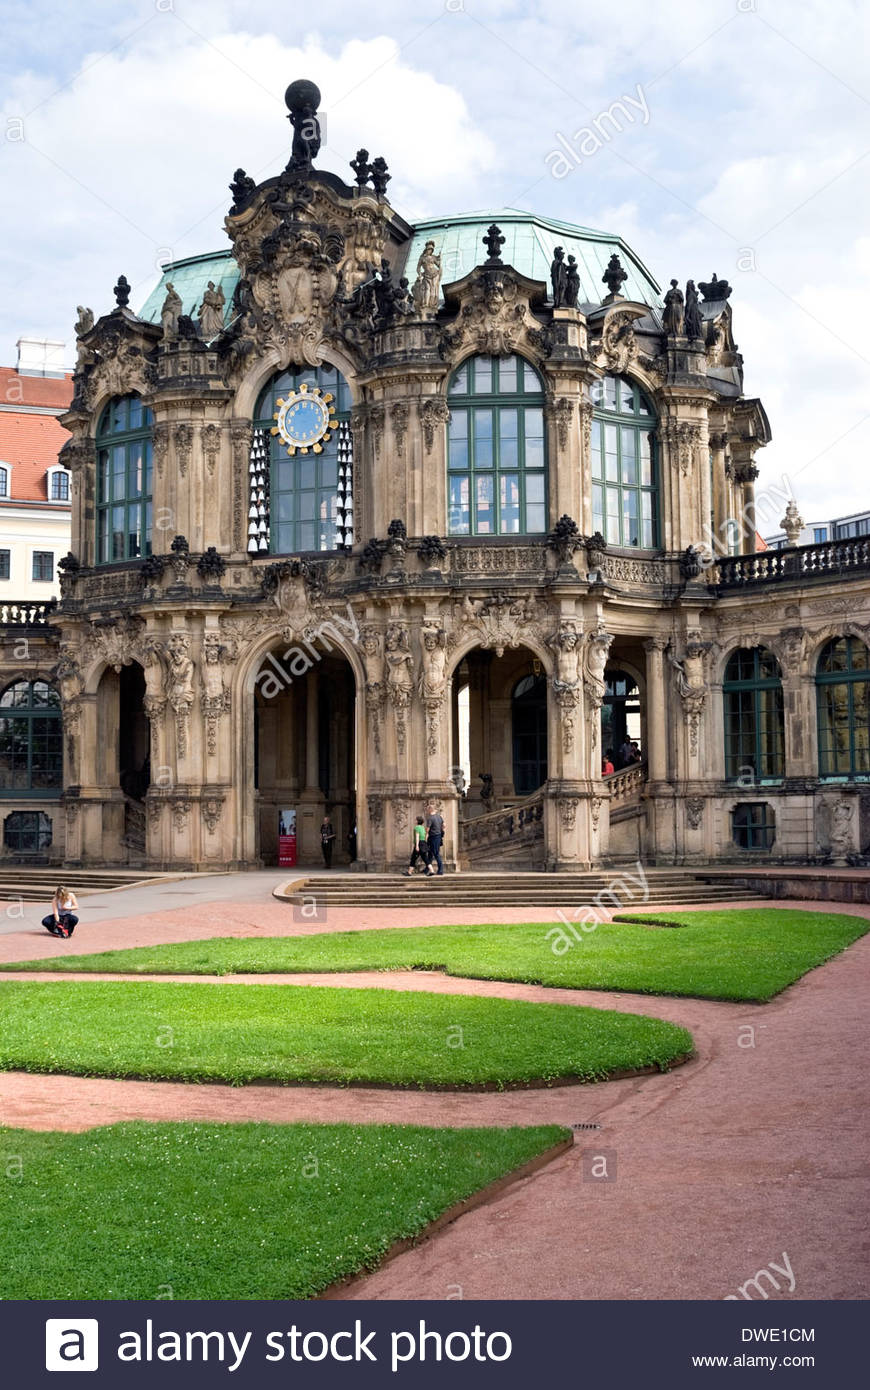 Bell Chime and entrance to the Procellain Collection at the Zwinger in Dresden, Saxony, Germany. Stock Photo